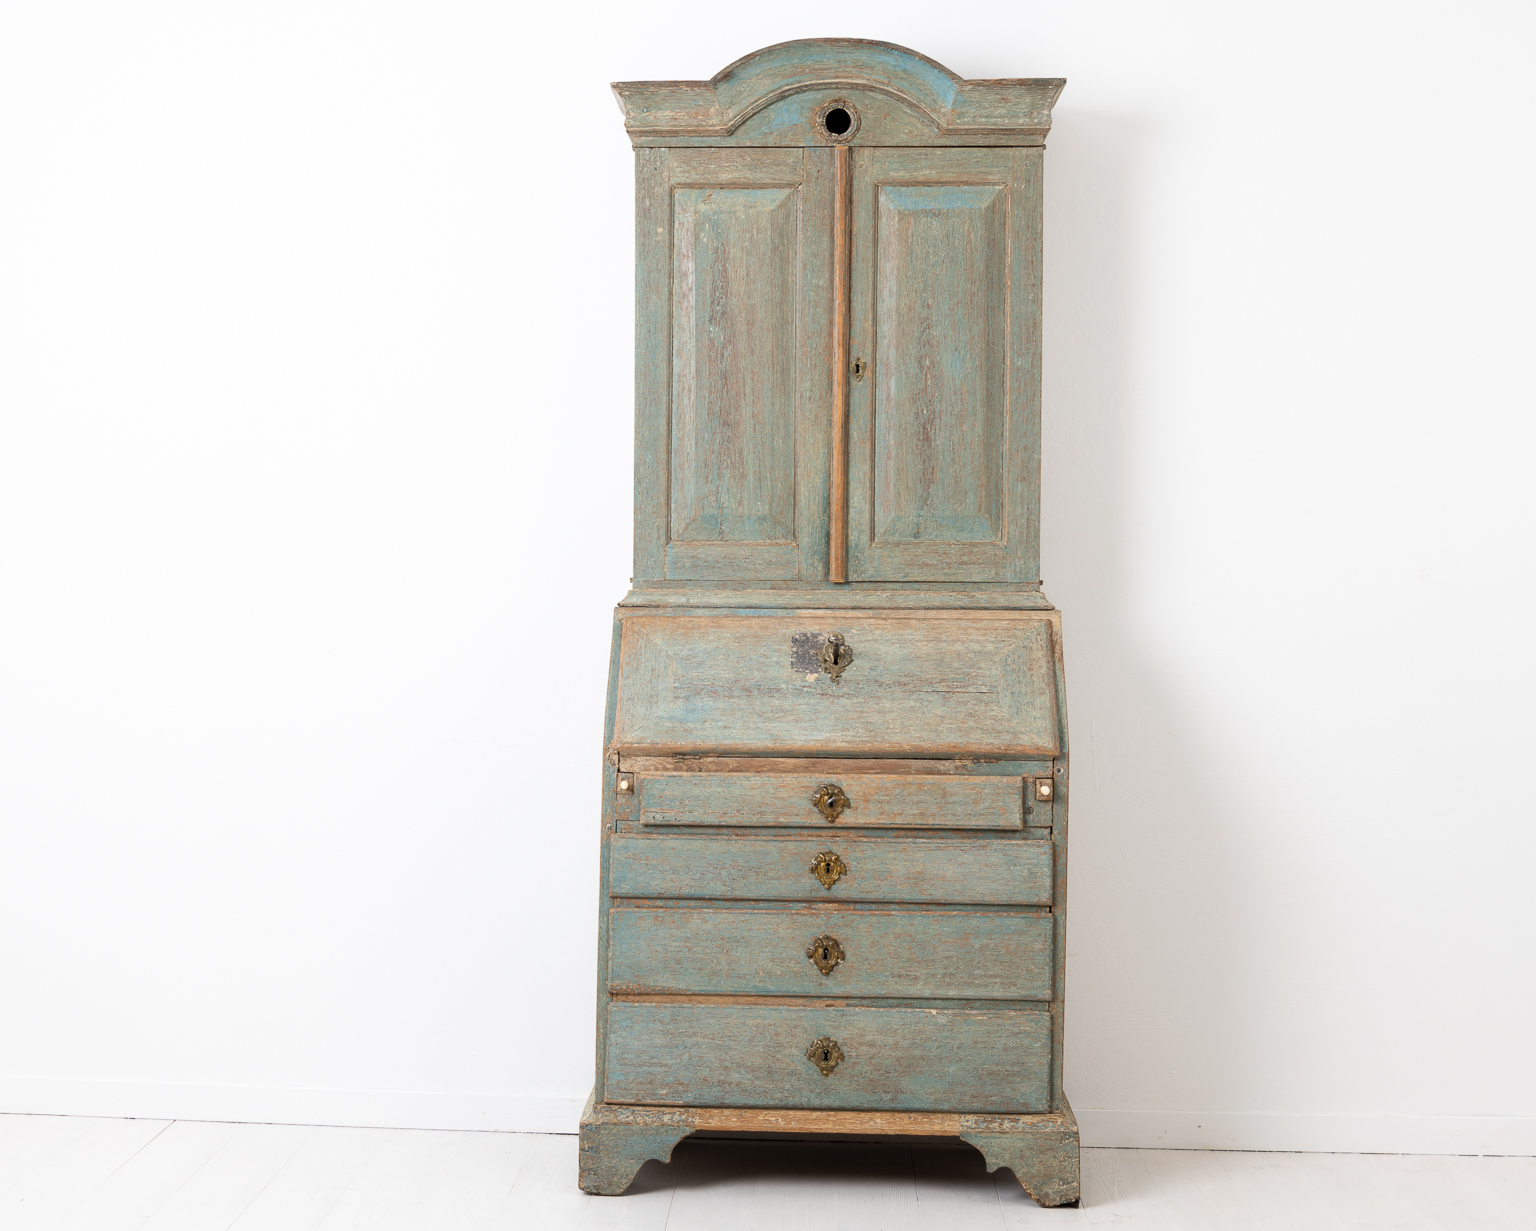 Blue rococo cabinet with desk top from Sweden. The cabinet is from the mid 1700s and made from oak and dry scraped by hand to the original blue paint